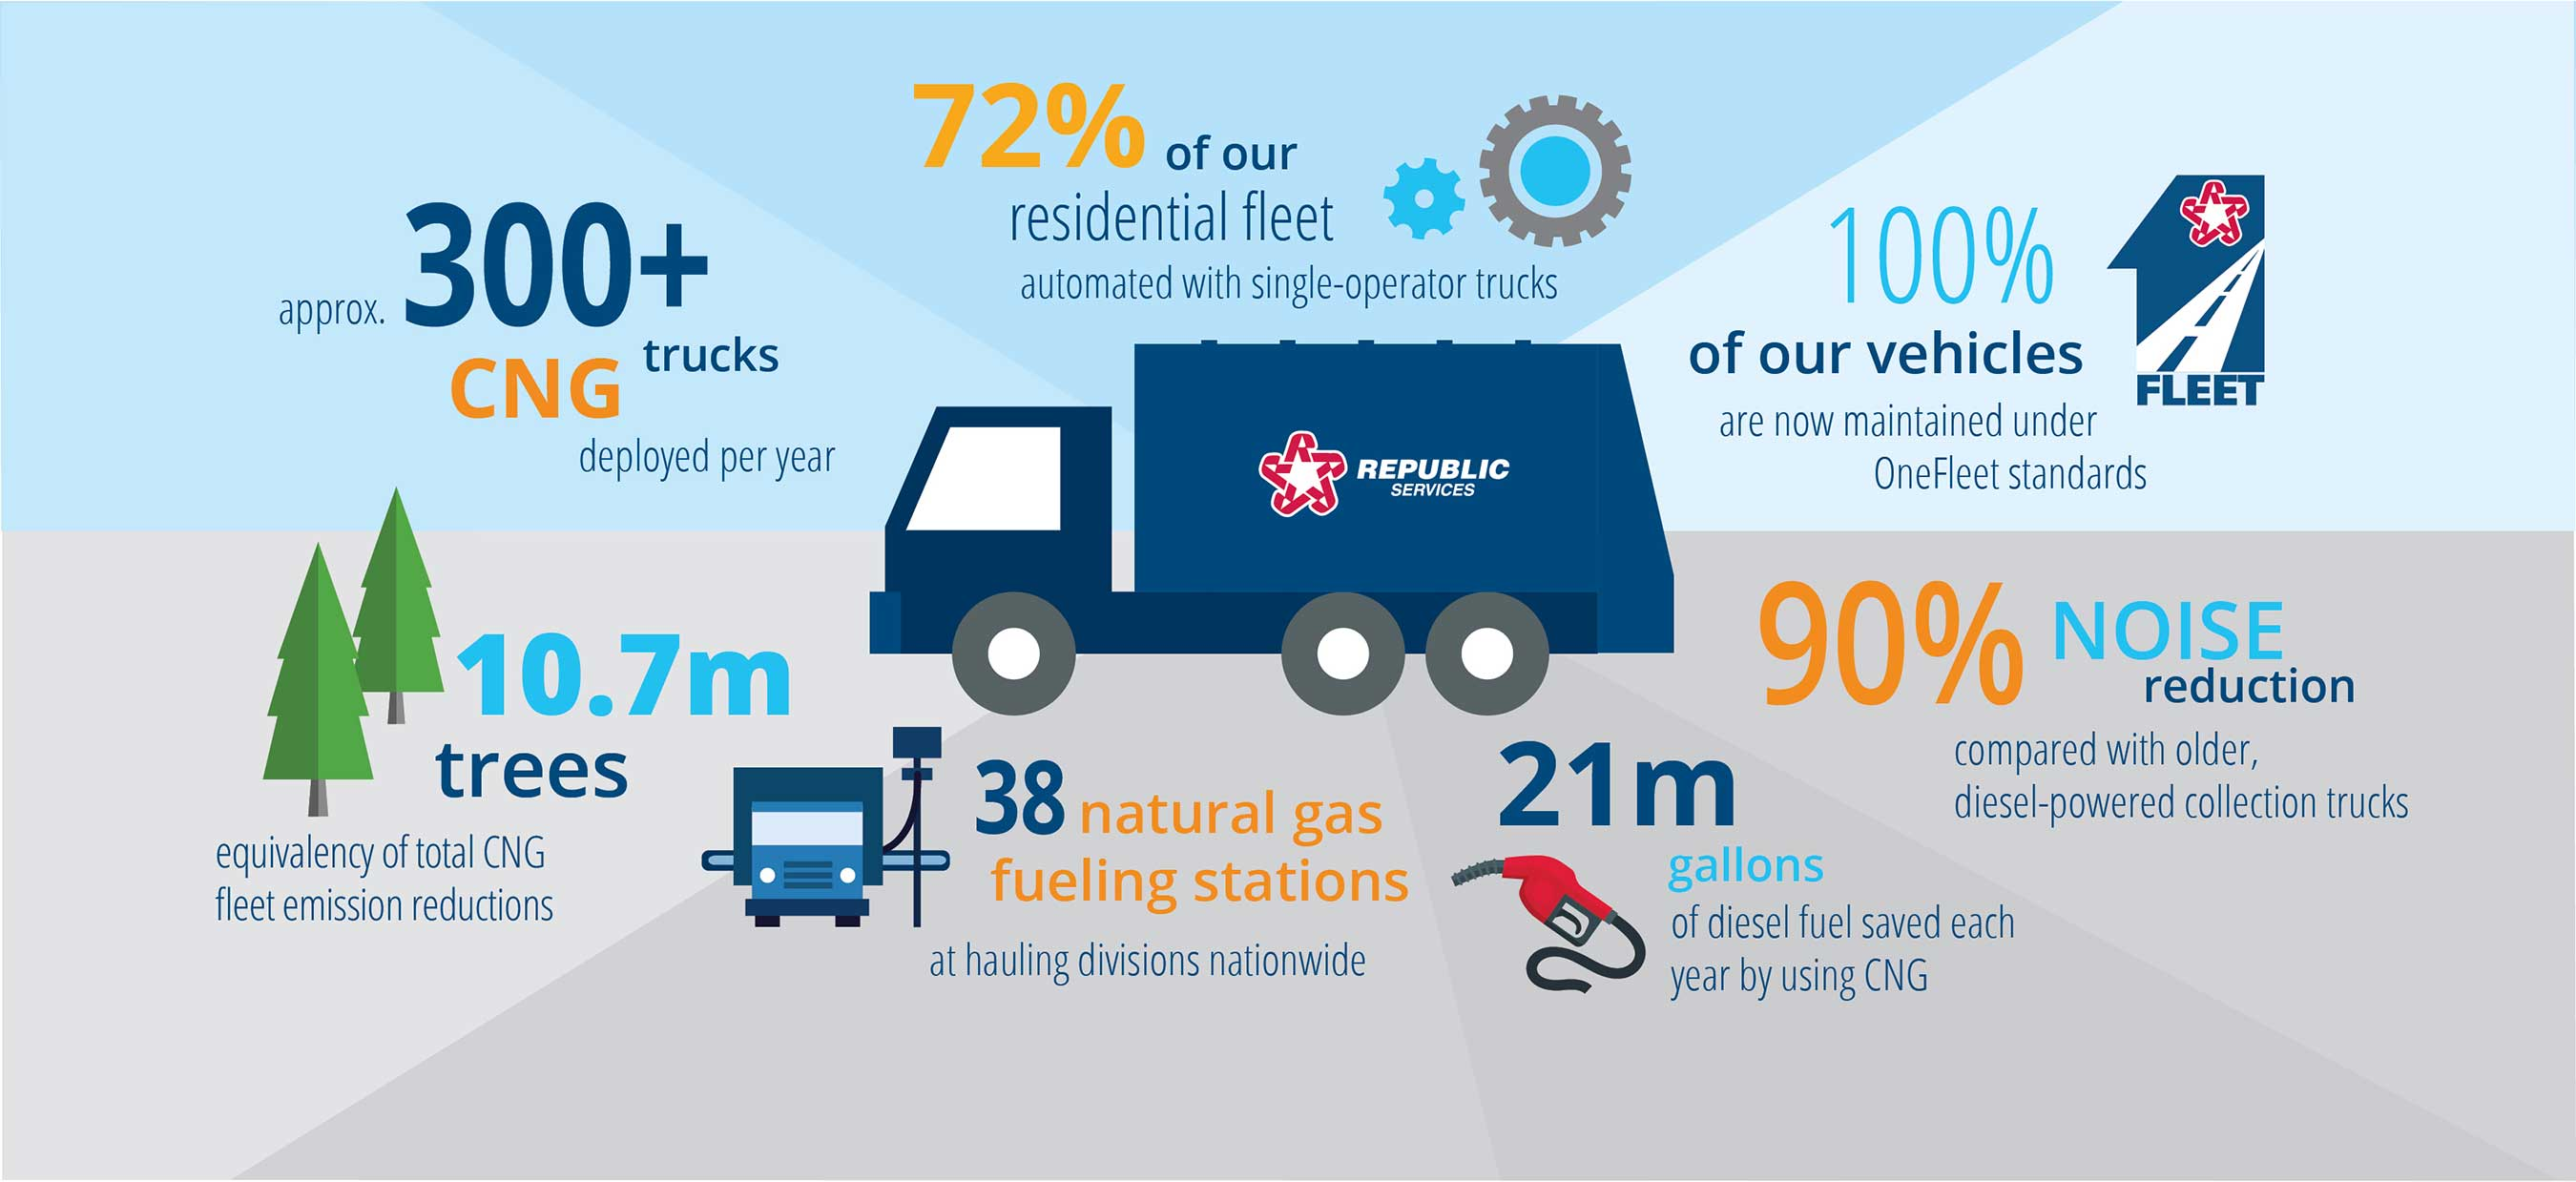 Republic is leveraging alternative fuels and fleet innovation to help preserve our Blue Planet.